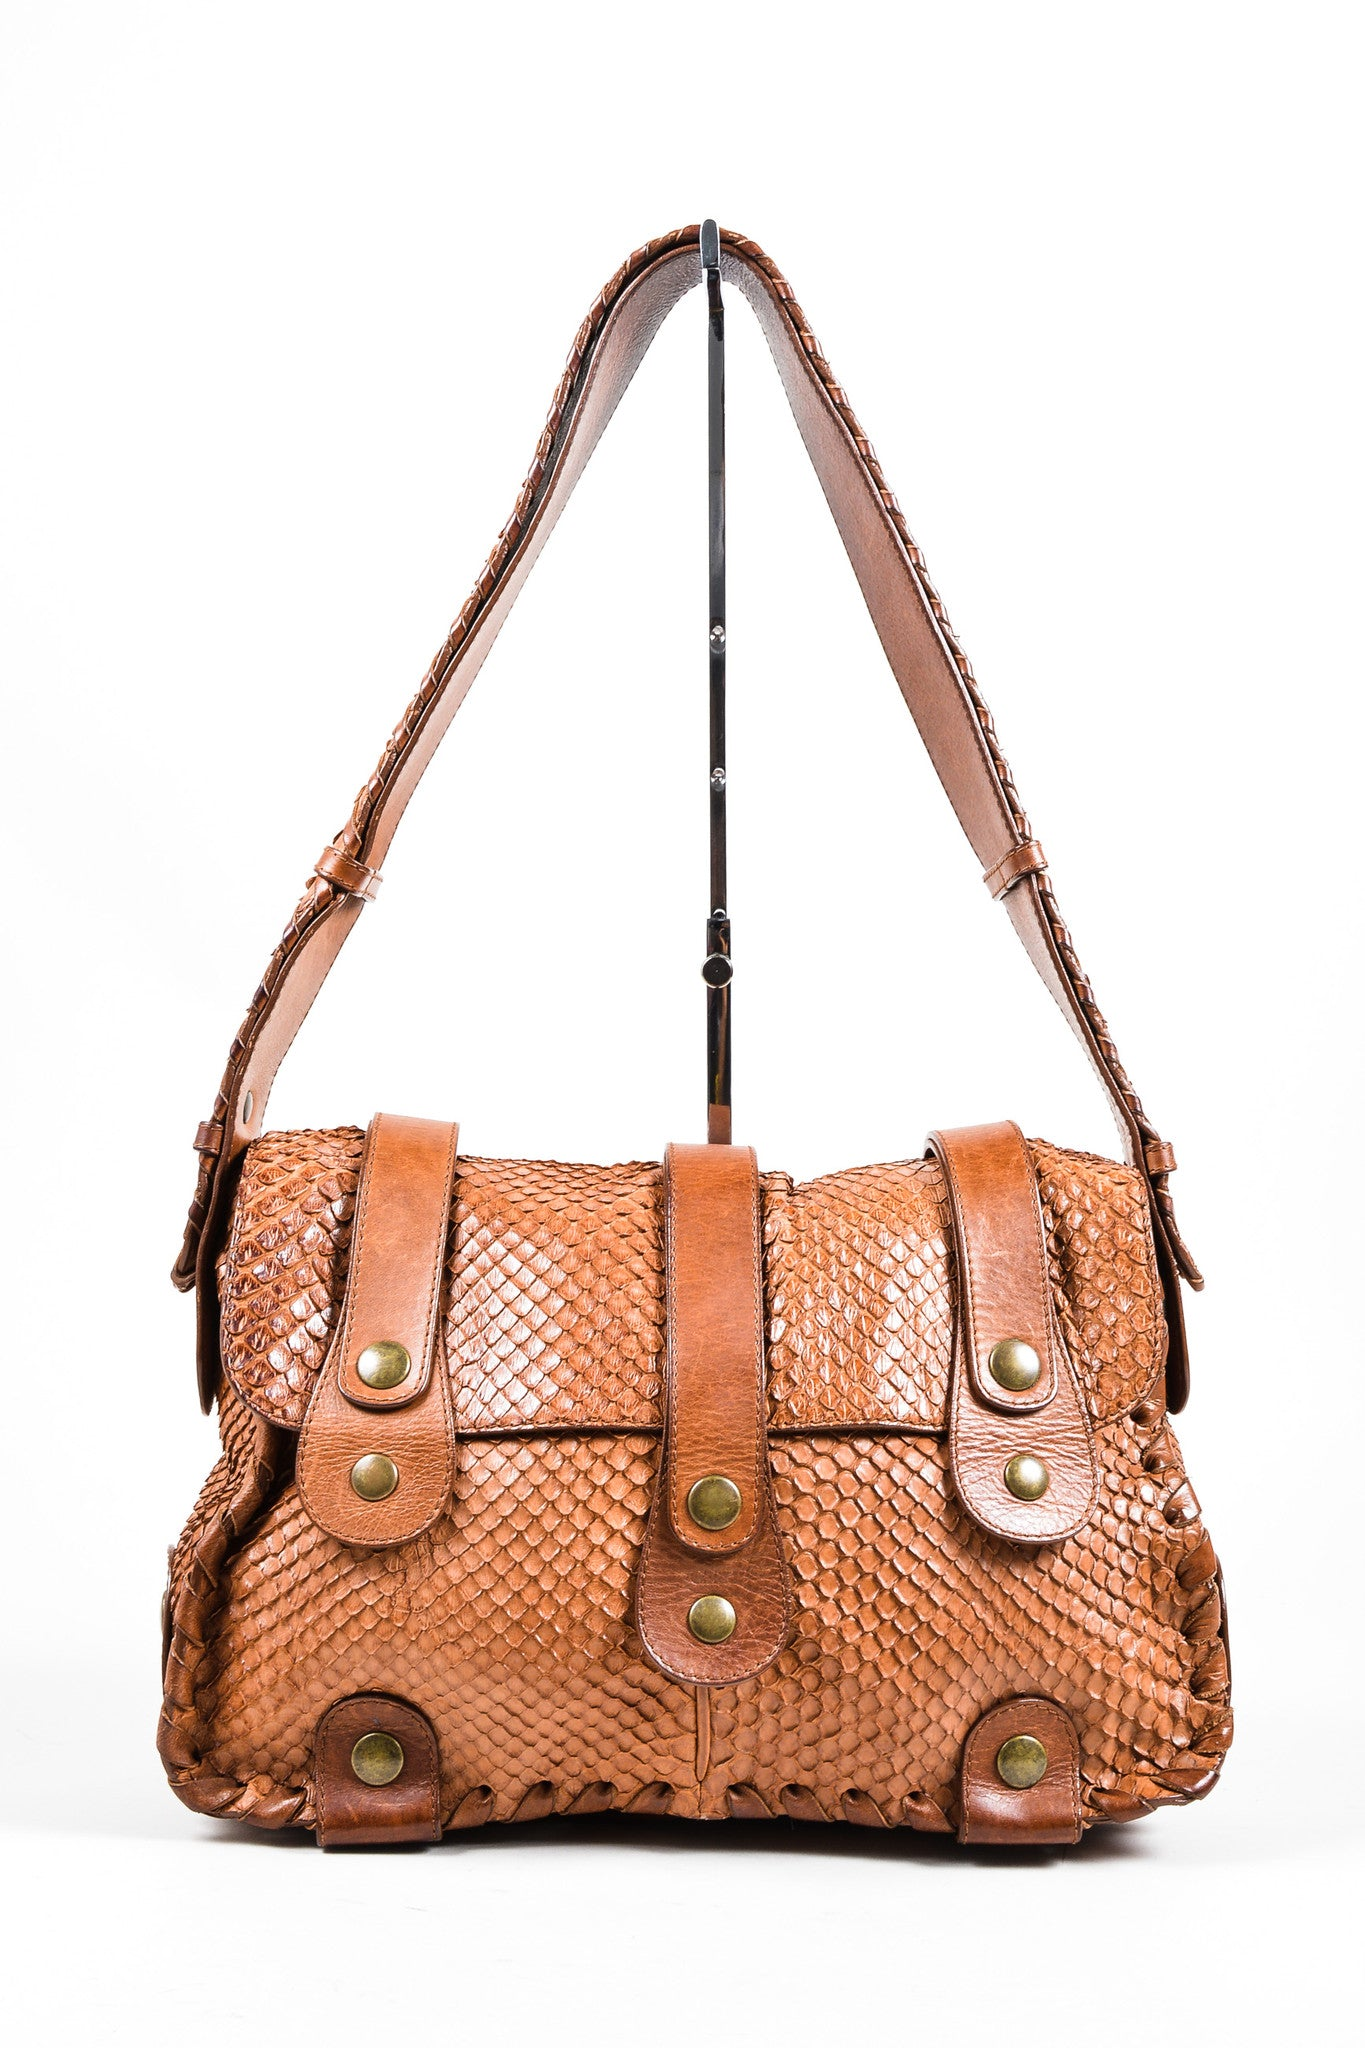 Brown Python Leather Chloe Flap Messenger Bag Frontview